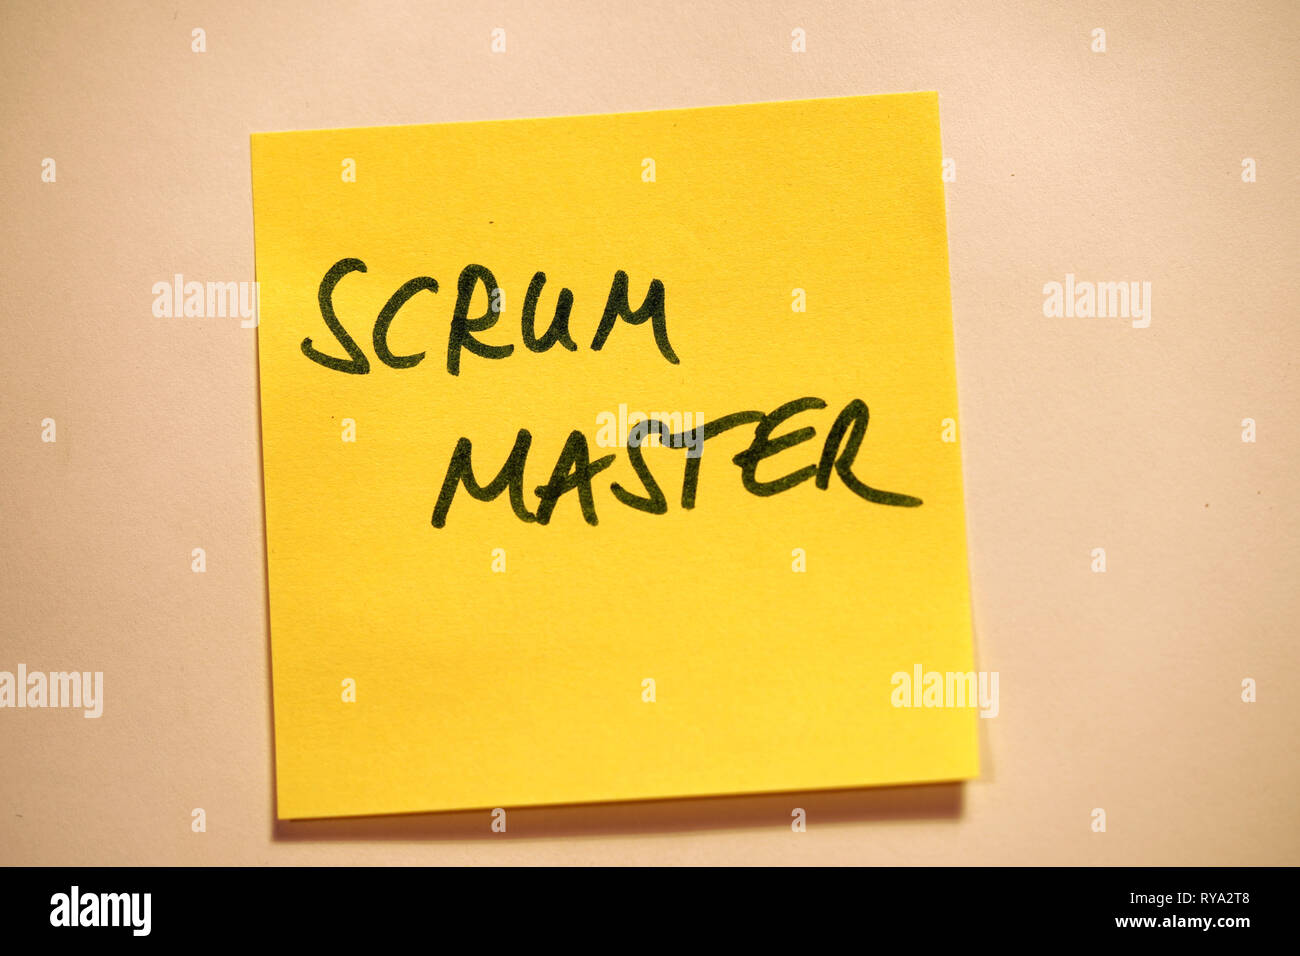 Yellow Sticky Note Scrum Agile Scrum Master - Stock Image